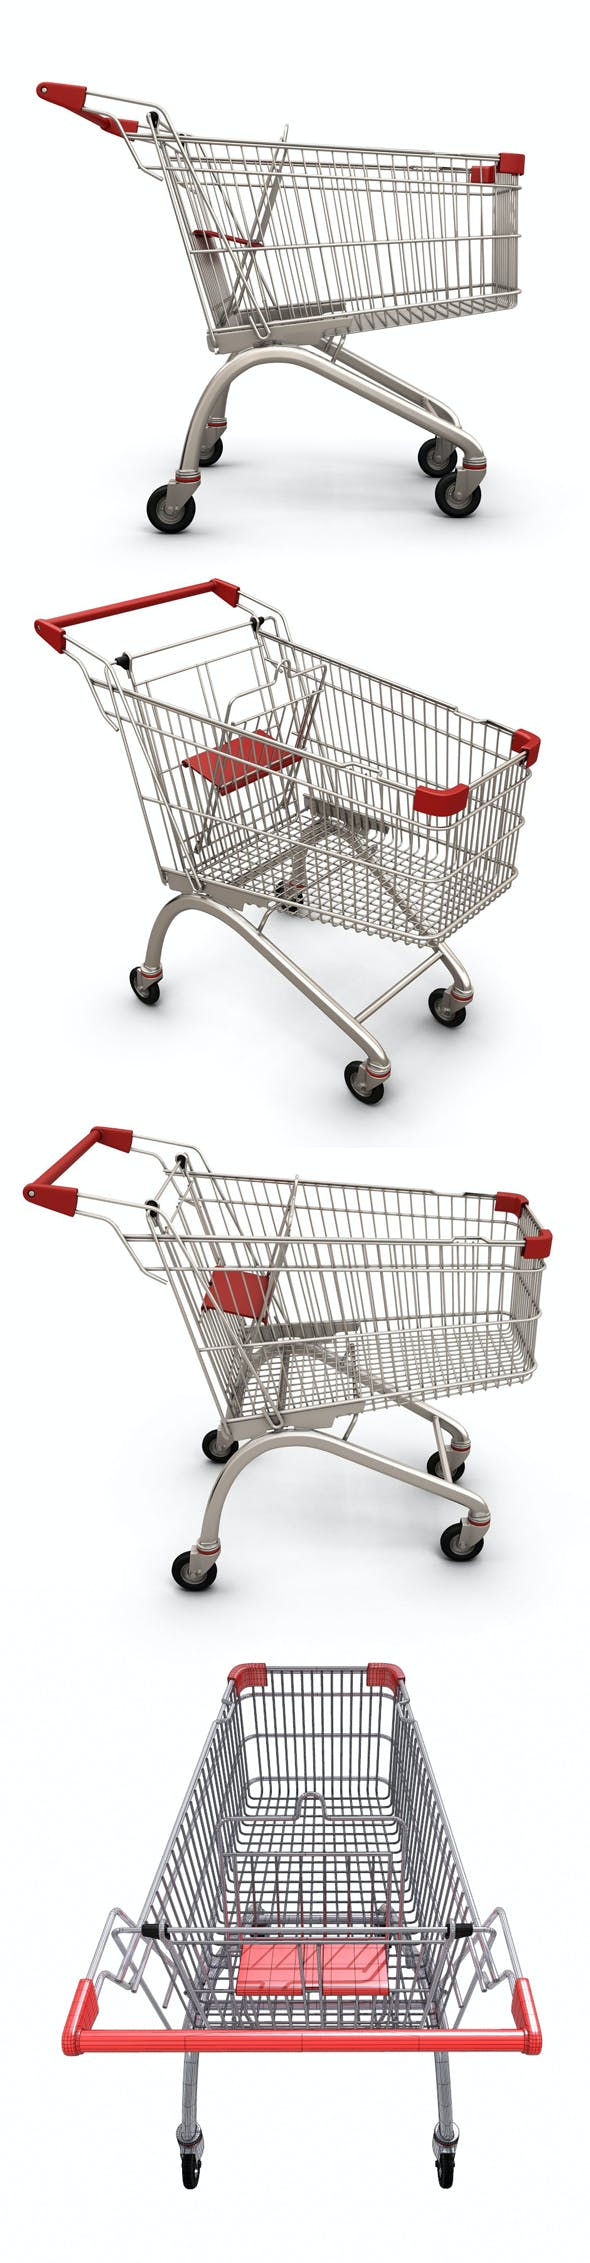 Empty shopping cart. - 3DOcean Item for Sale